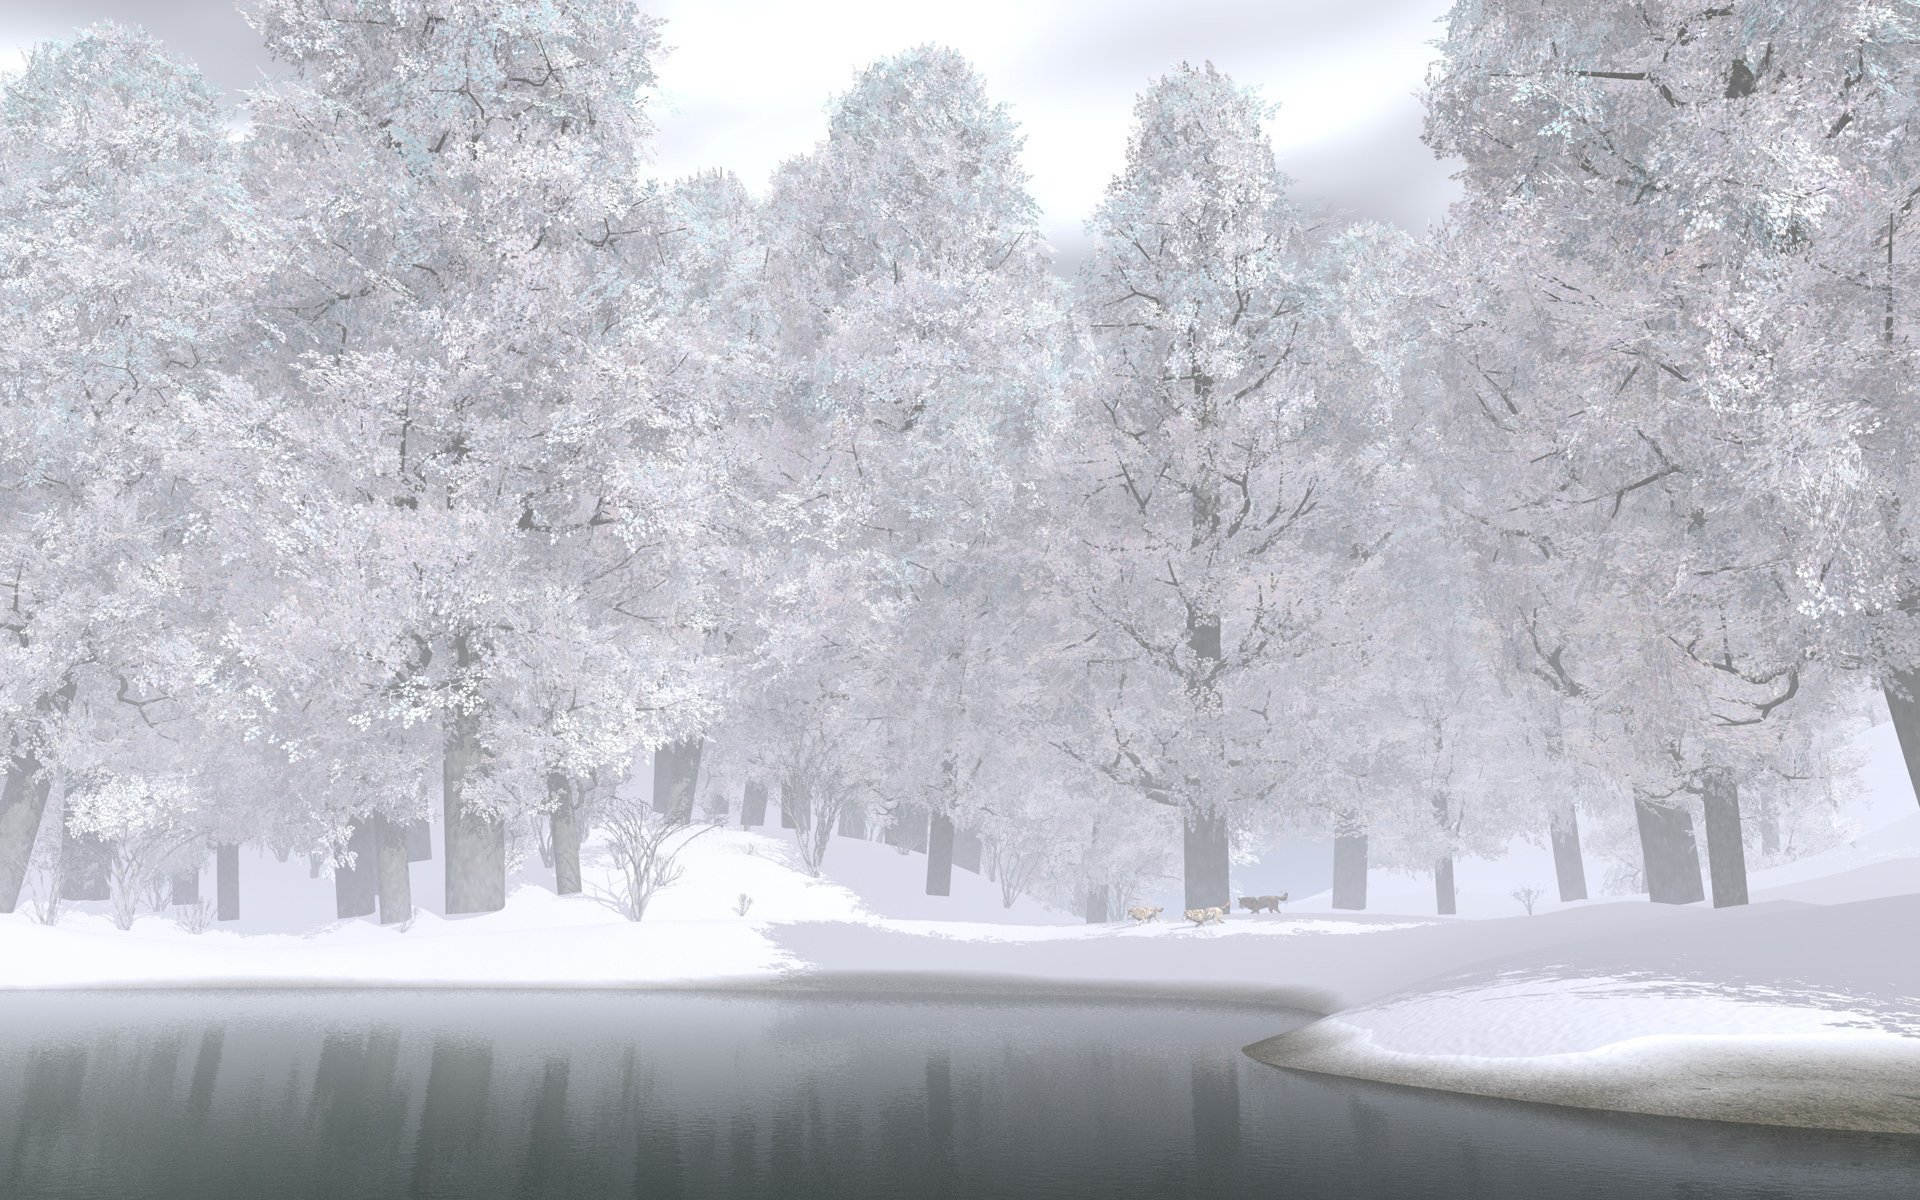 winter_snow_lake_wolves_trees_forest_hd-wallpaper-332409